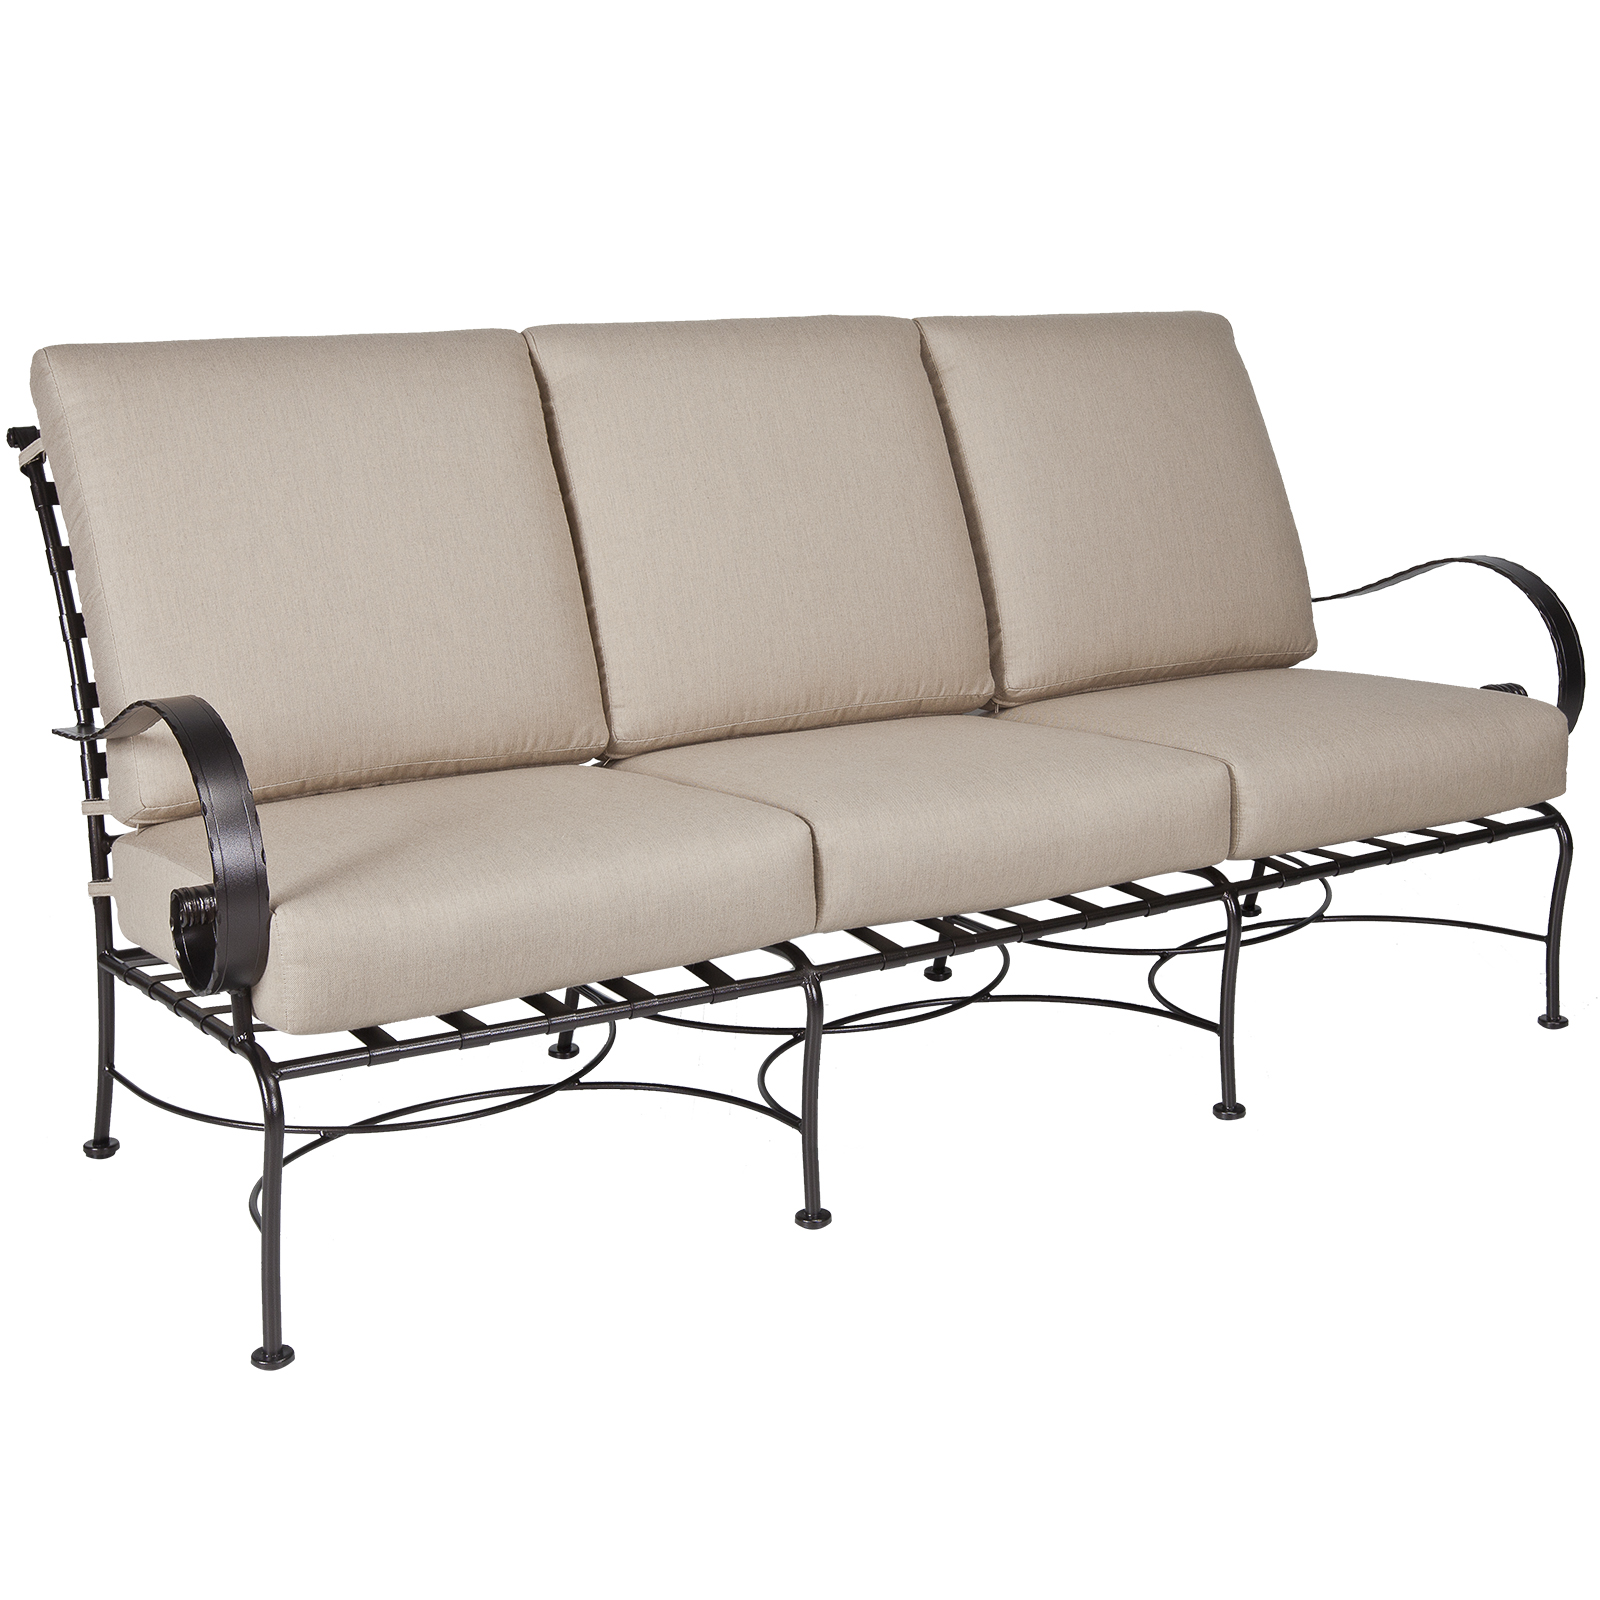 Sofa-956-3SW_Catalog_GR35_1600-Classico-W-OW-Lee